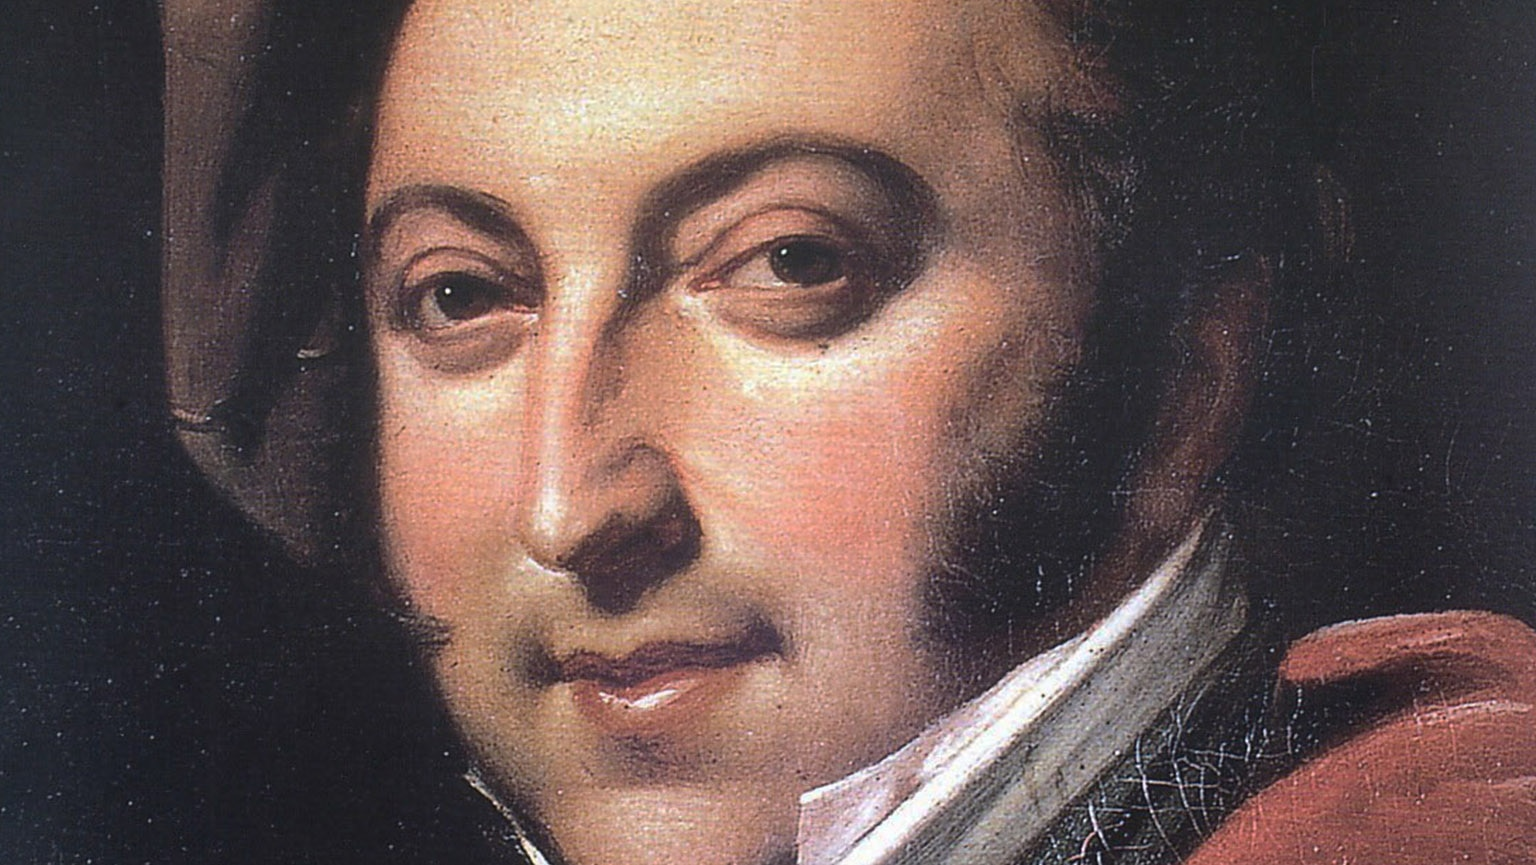 The Bel Canto Style and Rossini's The Barber of Seville, I